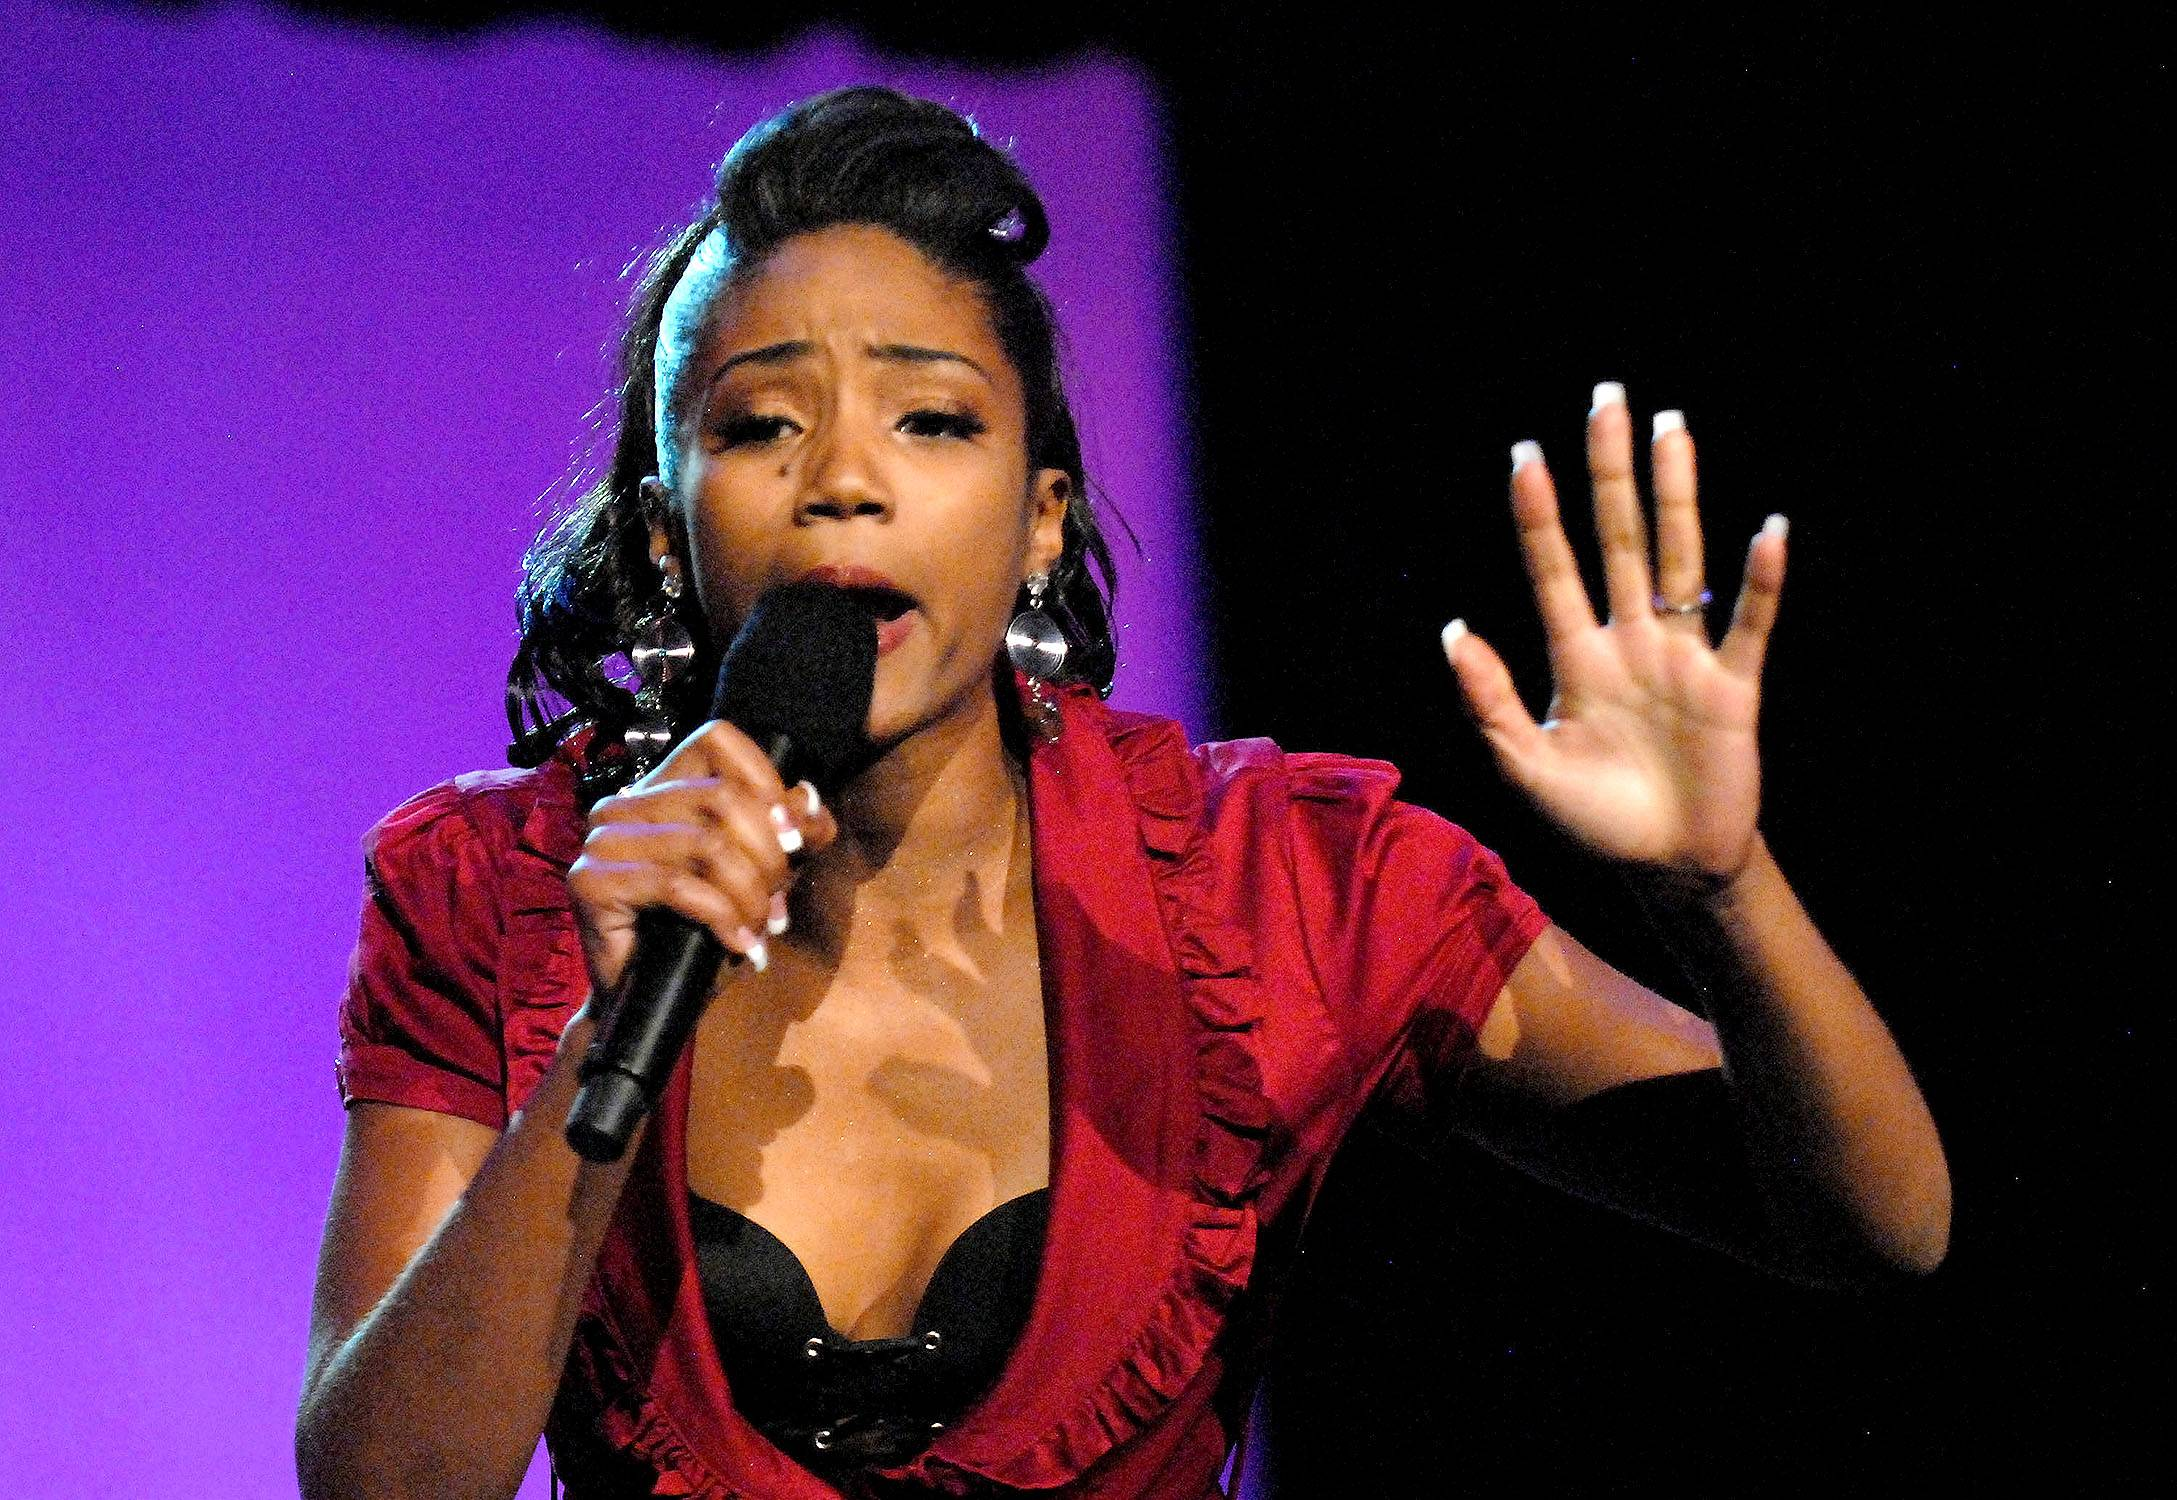 Most Def - One of Tiffany's first major looks was on Russell Simmons' Def Comedy Jam in 2008. Though she had a few stints on other programs prior, this was one of her first commercial stand-up performances and it helped push her career in a different direction. (Photo: Jeff Kravitz/FilmMagic)